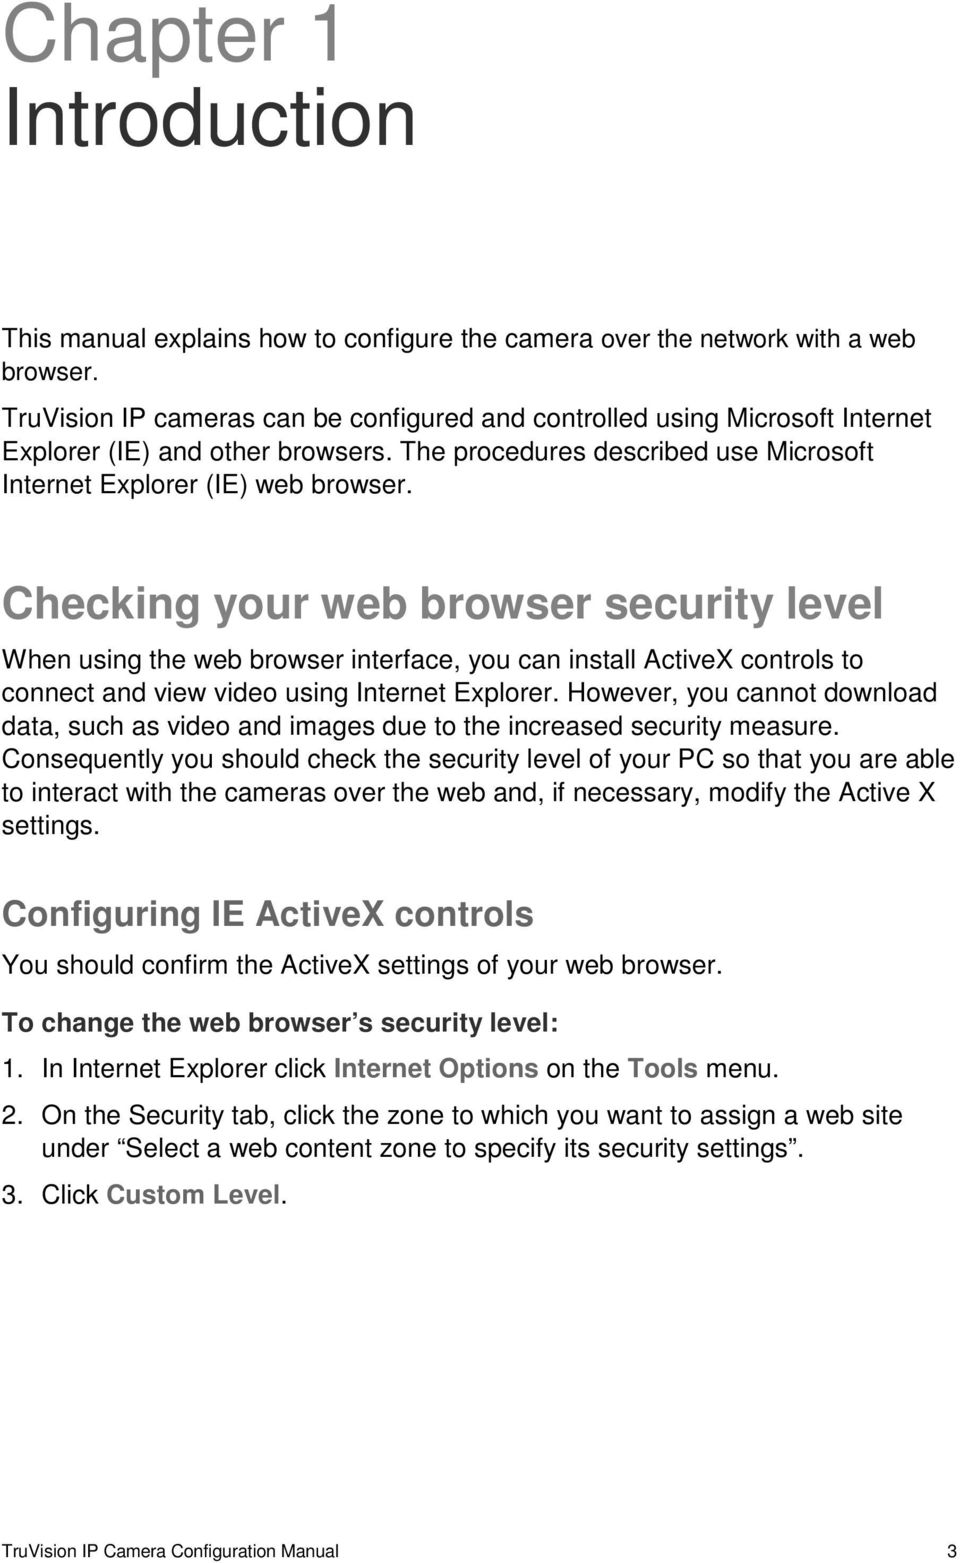 Checking your web browser security level When using the web browser interface, you can install ActiveX controls to connect and view video using Internet Explorer.